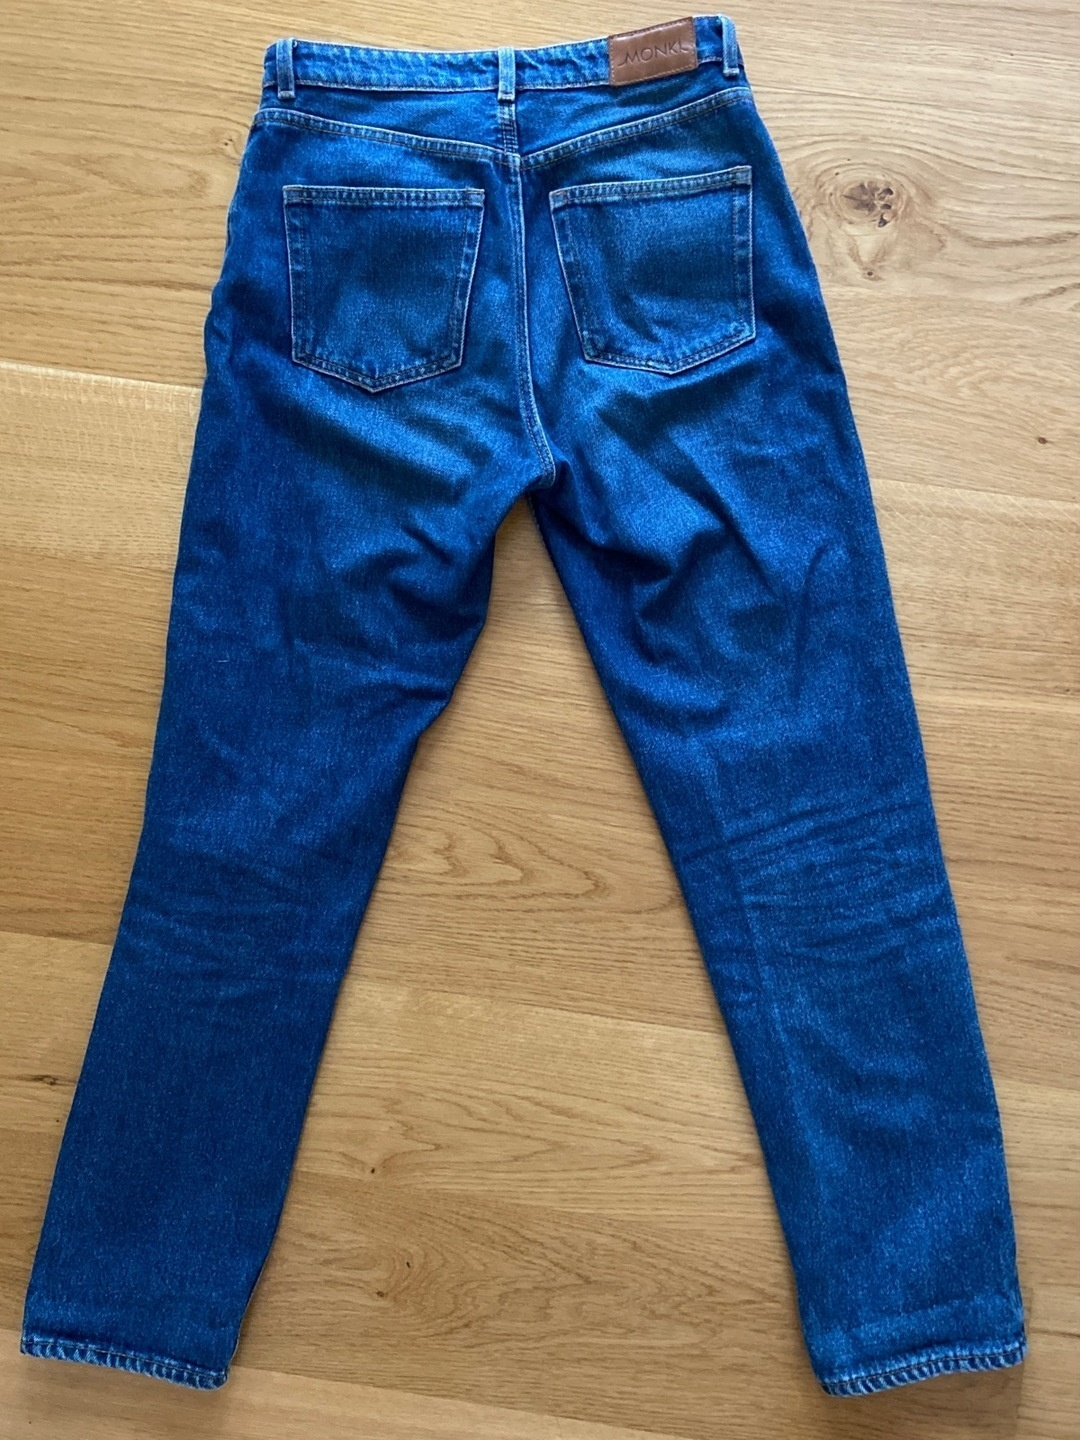 Damers bukser og jeans - MONKI photo 2